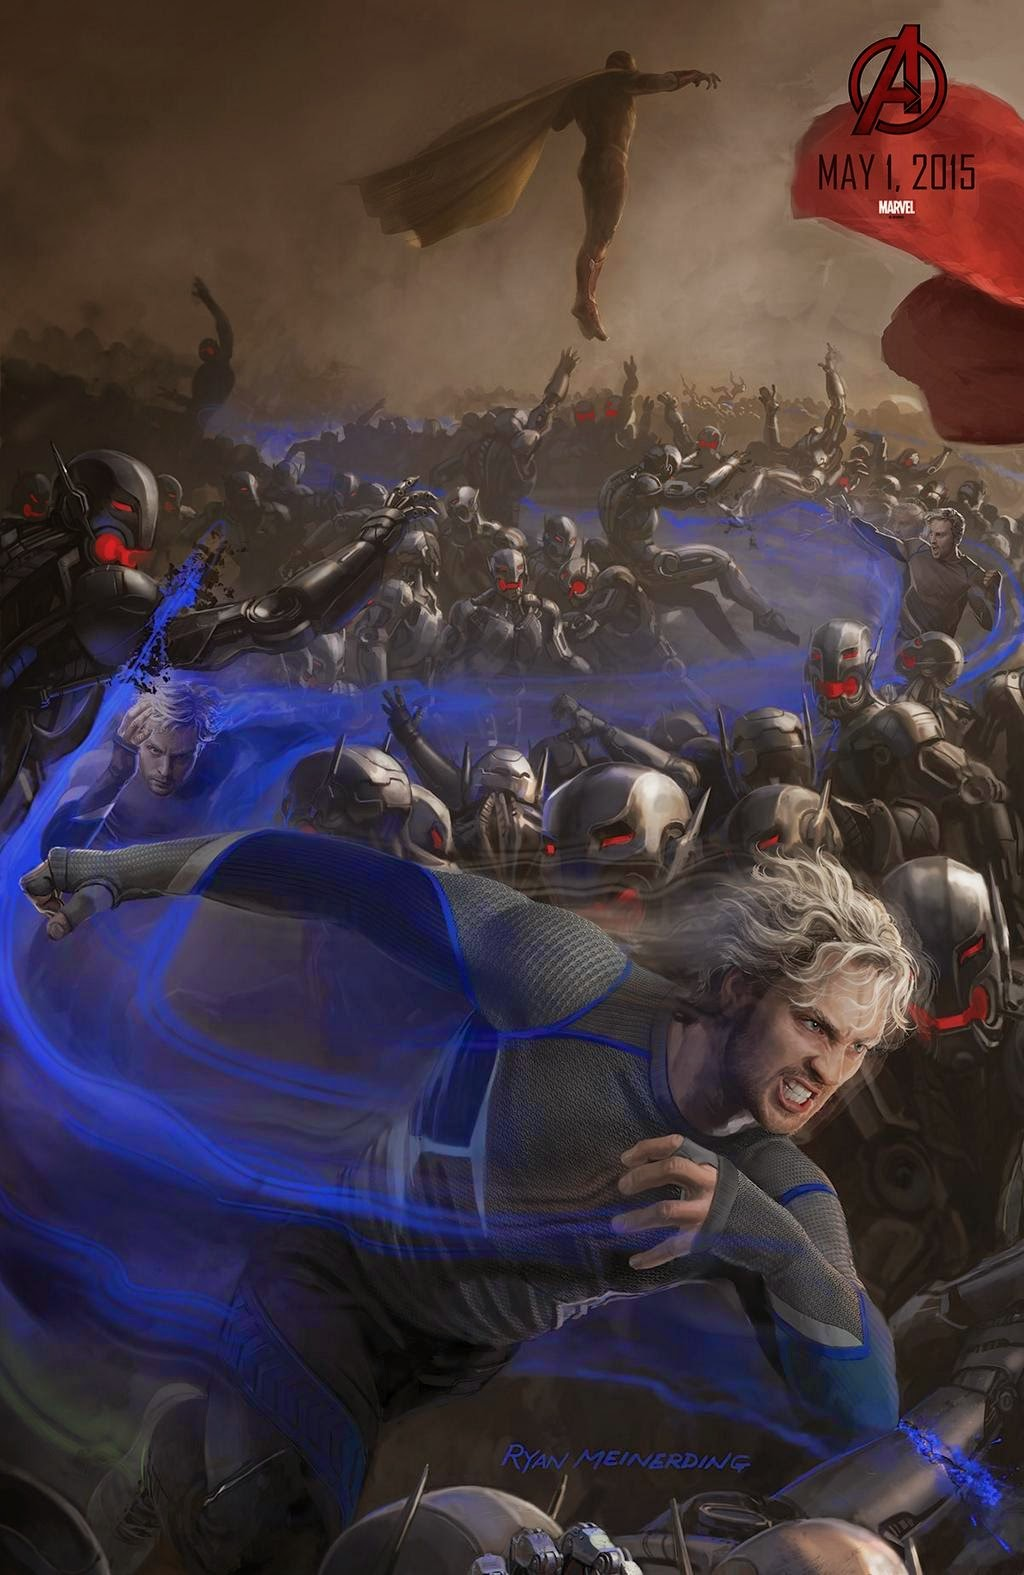 San Diego Comic-Con 2014 Exclusive Avengers Age of Ultron Concept Art Movie Posters by Marvel - Aaron Taylor-Johnson as Quicksilver & Paul Bettany as The Vision